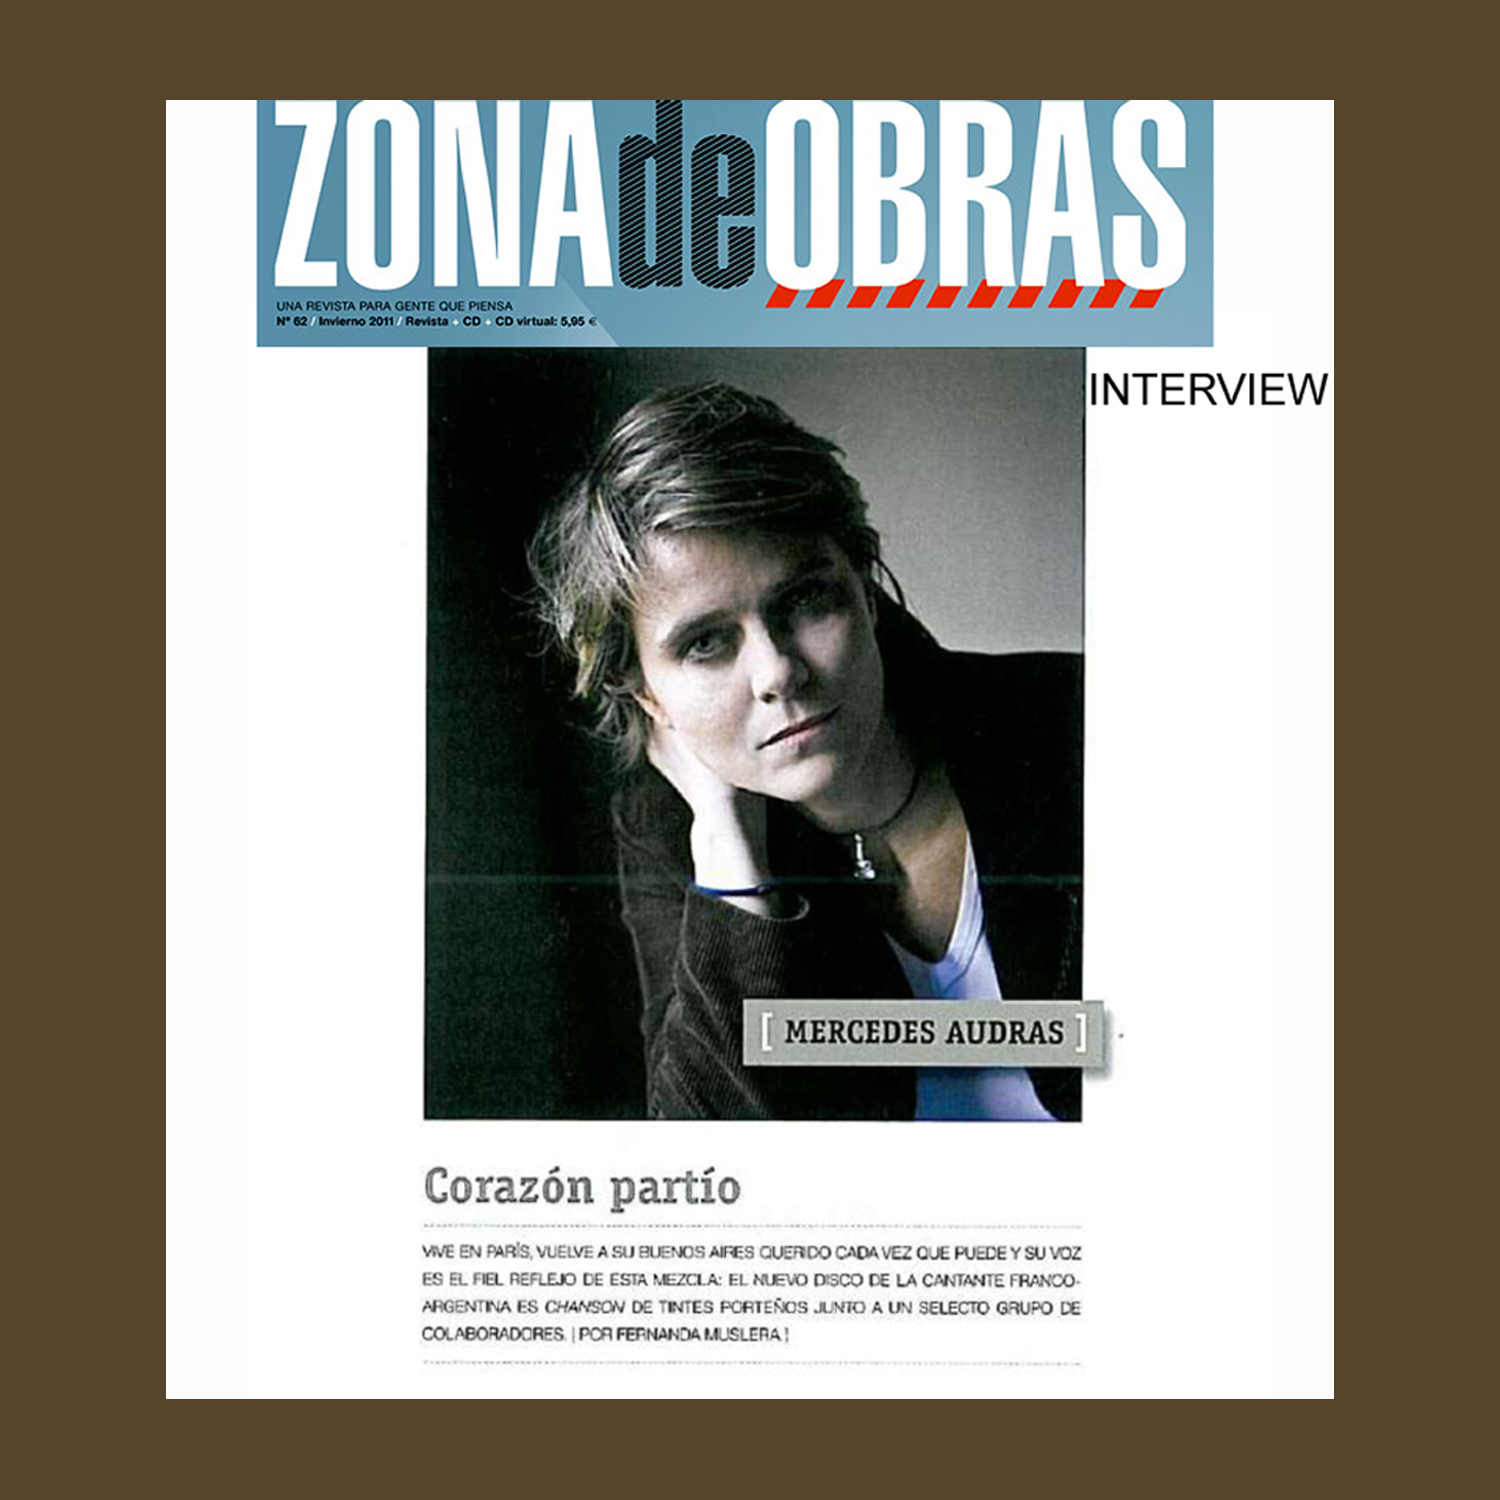 ZONA+DE+OBRAS+interview+ESPANA+2011